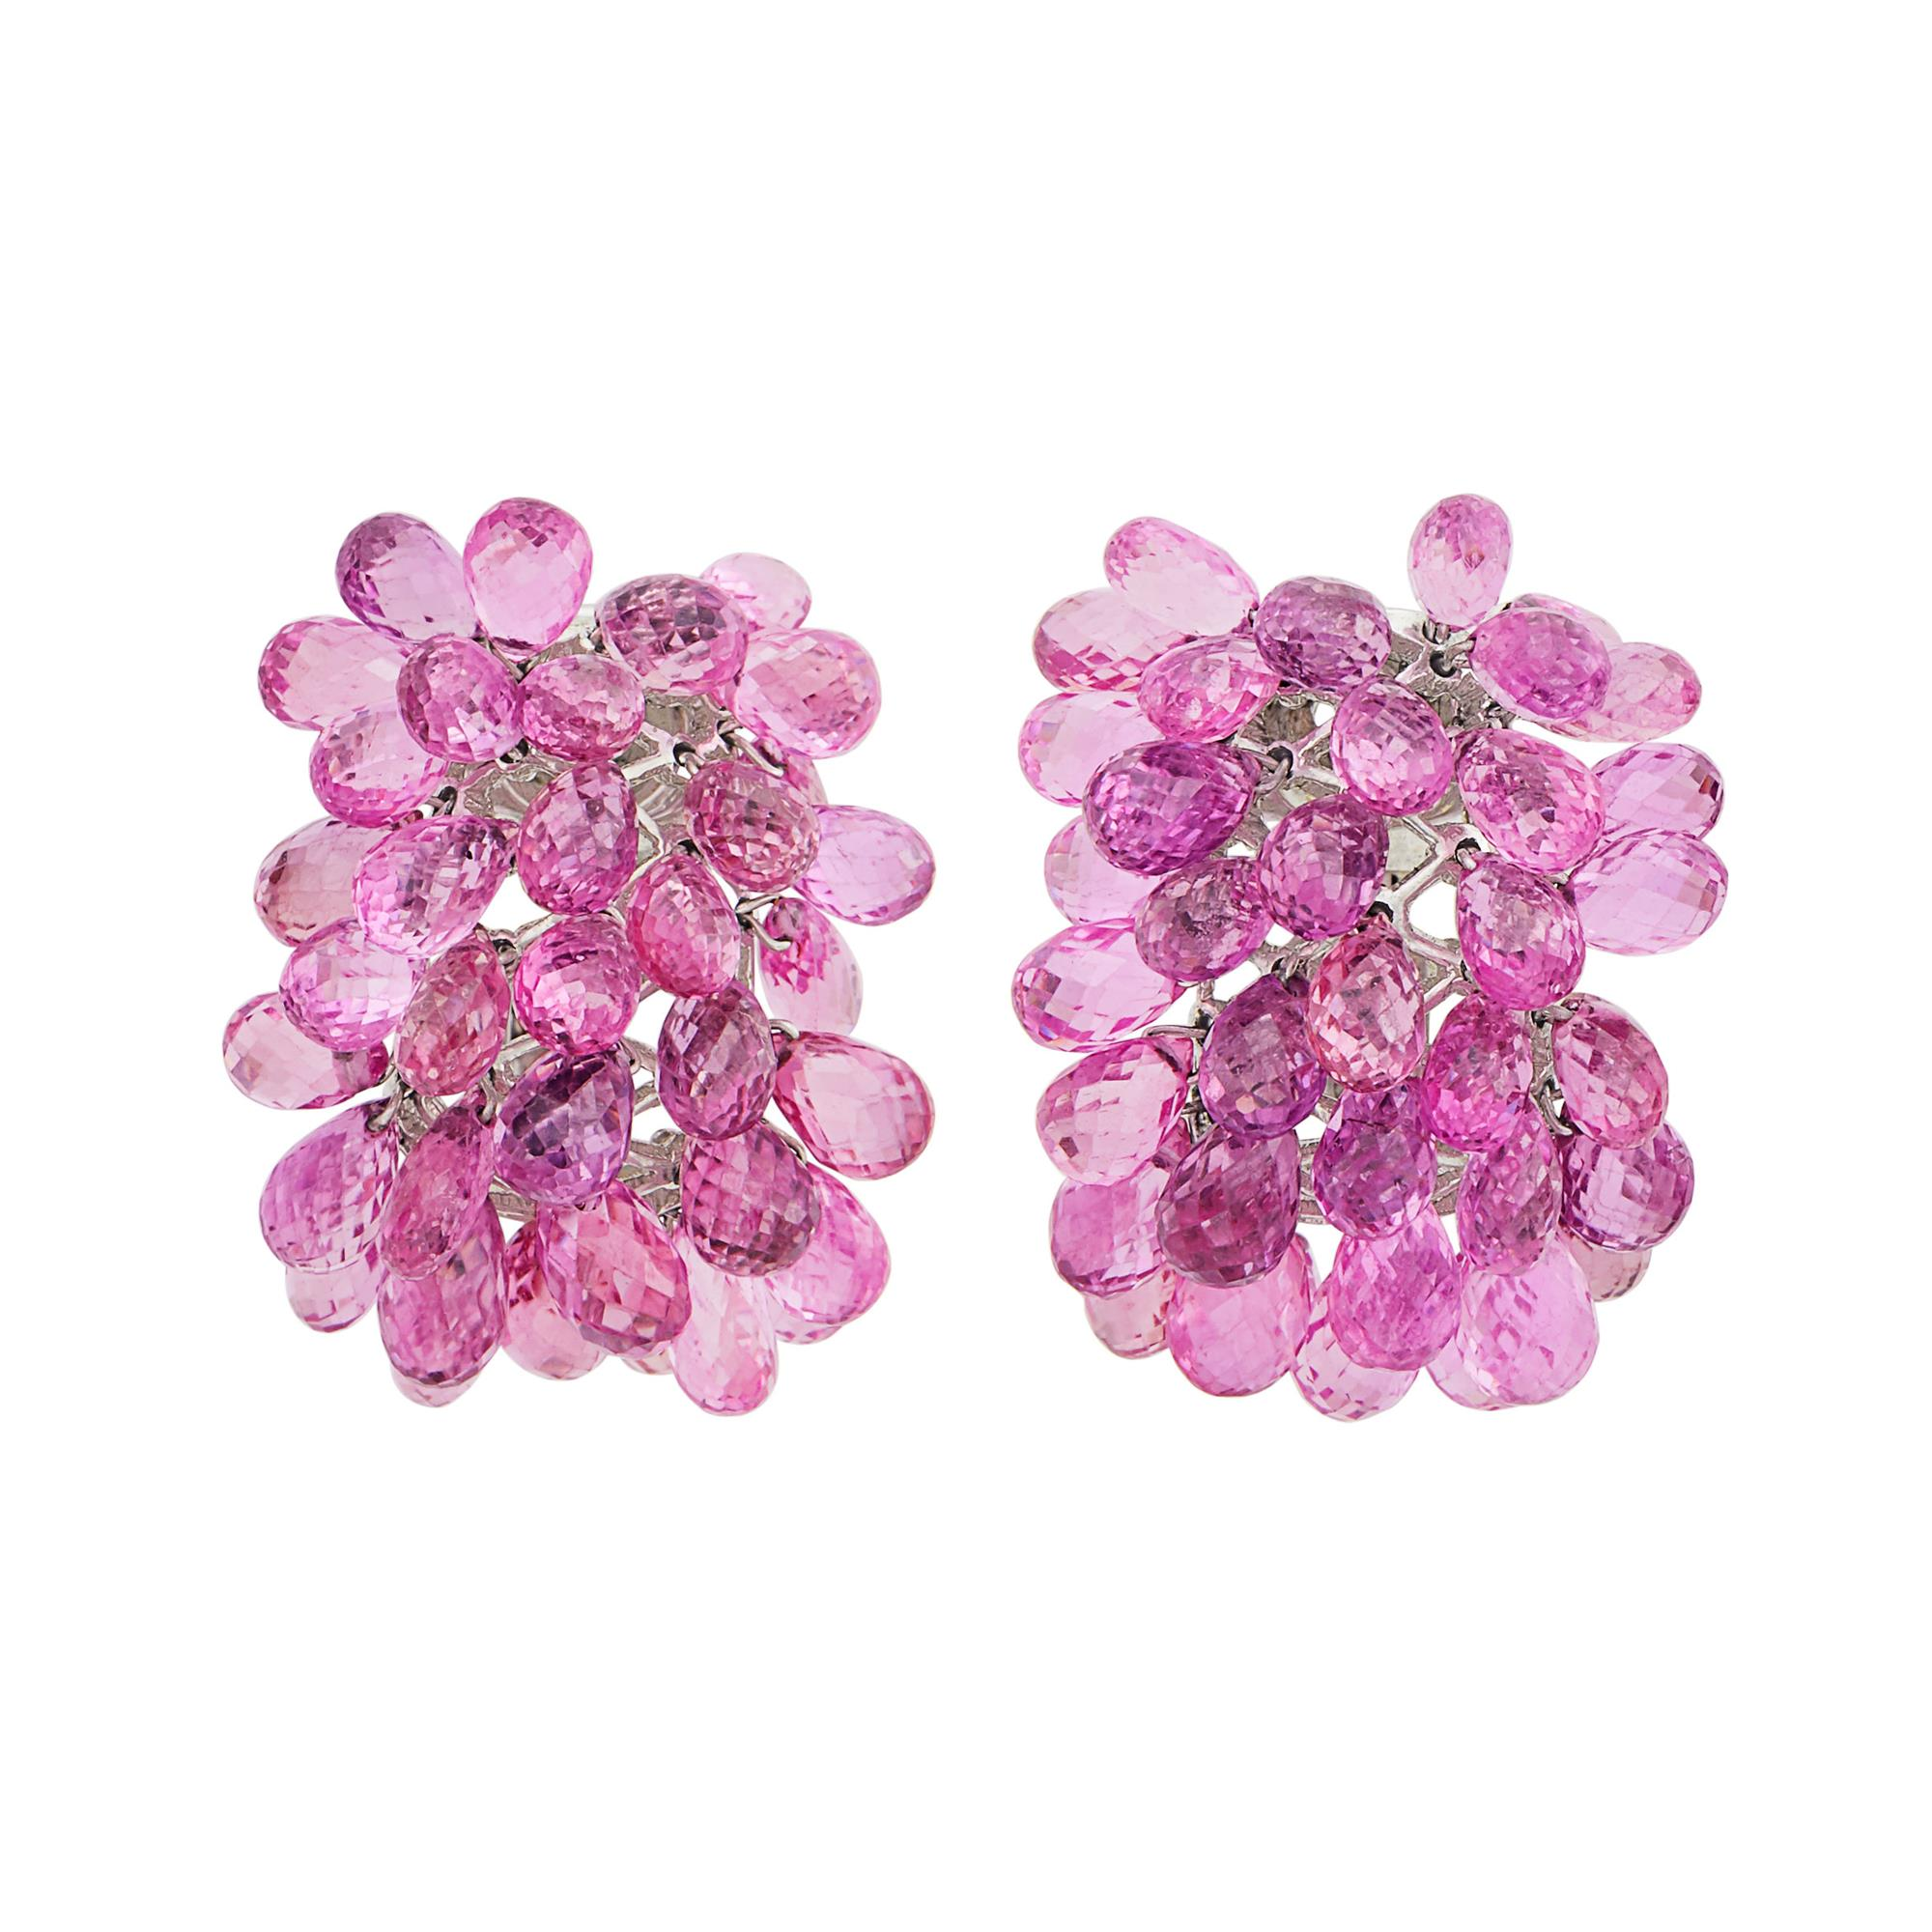 Lot image - Pair of White Gold and Pink Sapphire Briolette Cluster Earclips, Verdura